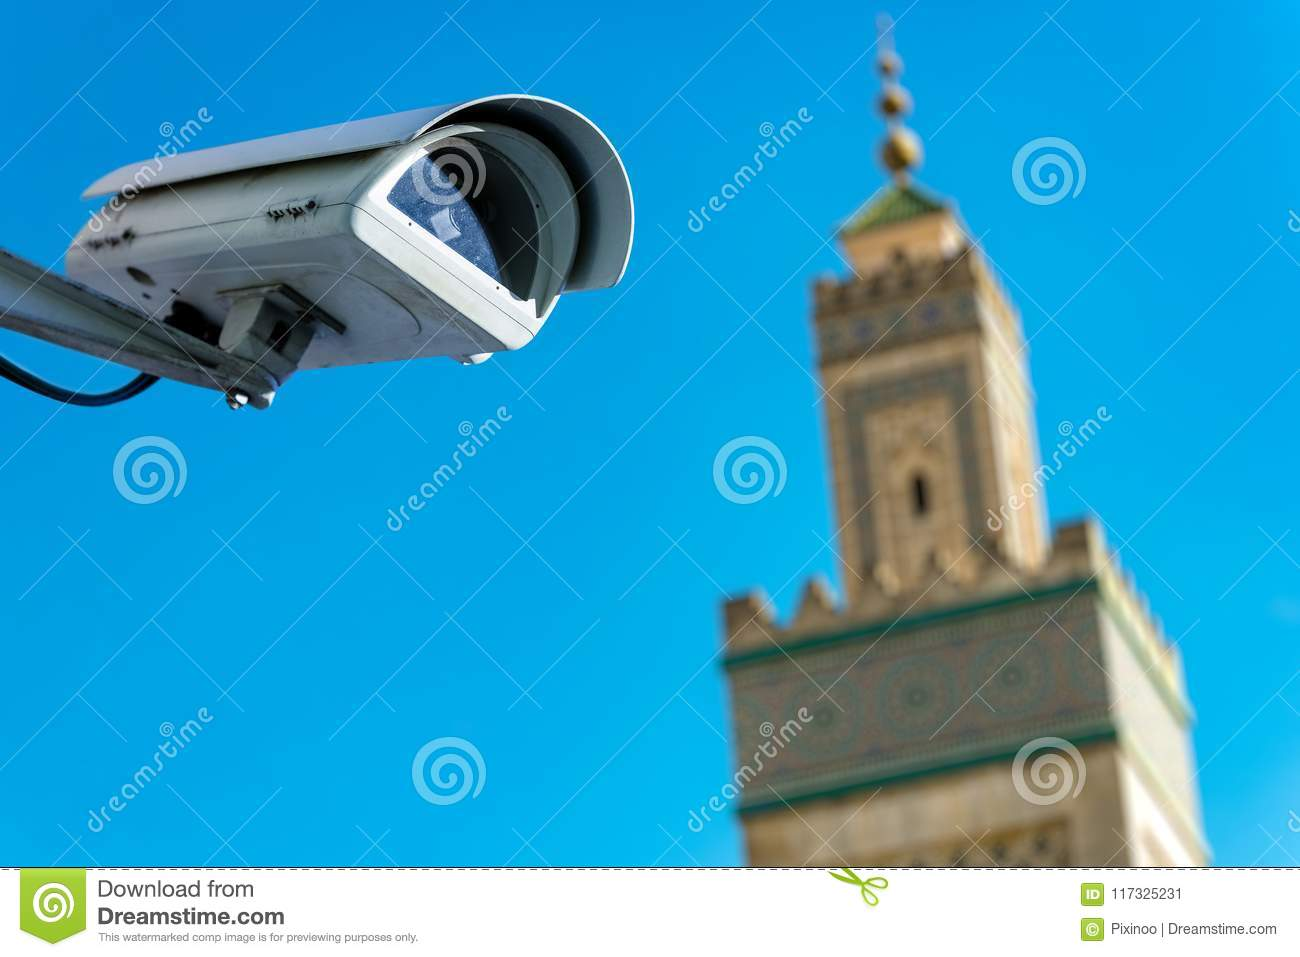 security CCTV camera or surveillance system with mosque on blurry background